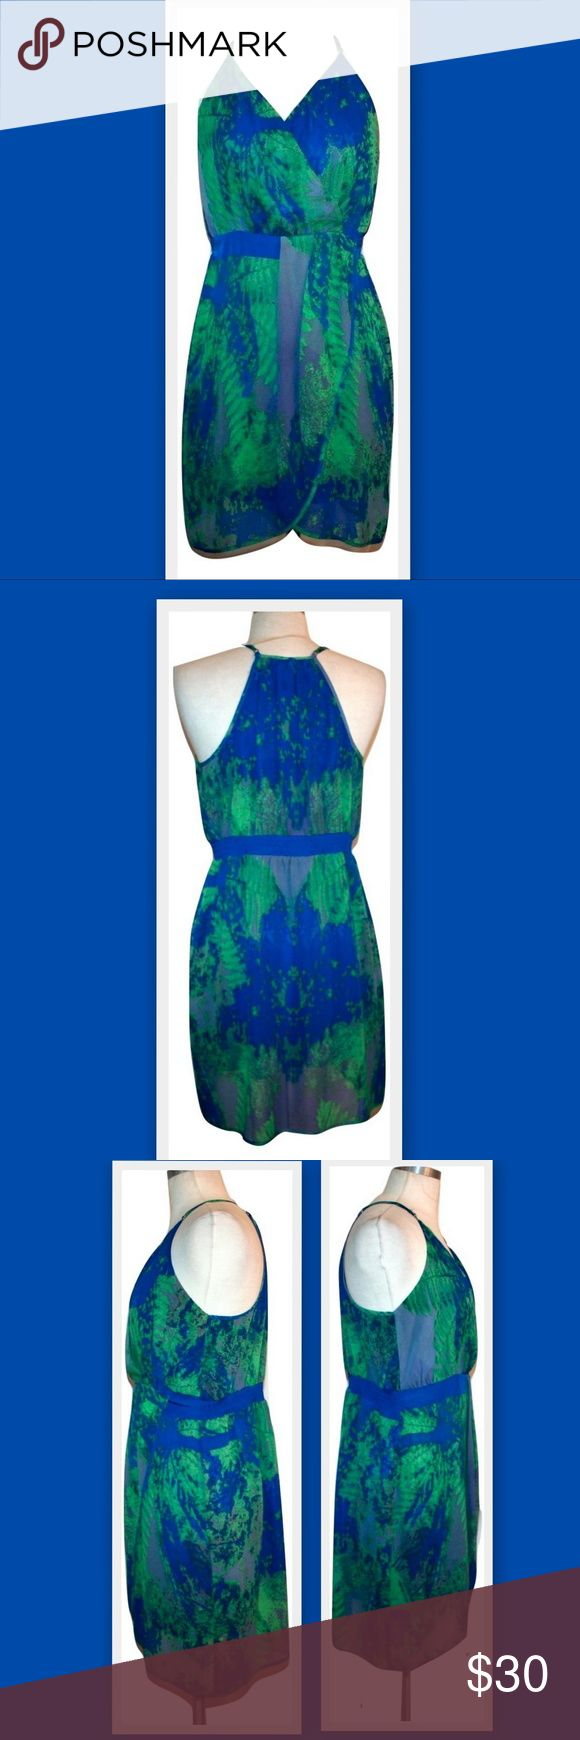 """Charlie Jade Faux Wrap Dress Charlie Jade dress. Abstract leafy pattern in blue and green. Faux wrap bodice and tulip skirt. Elastic waist across the back. Lining is slightly shorter than the top layer, showing a peek of the thigh. Adjustable straps. The last photo shows the same dress in a different print on a model.  100% polyester  Marked size M Bust 42""""  Elastic Waist 29"""" (stretches to about 35"""") Hips 44"""" Length 36"""" Charlie Jade Dresses"""